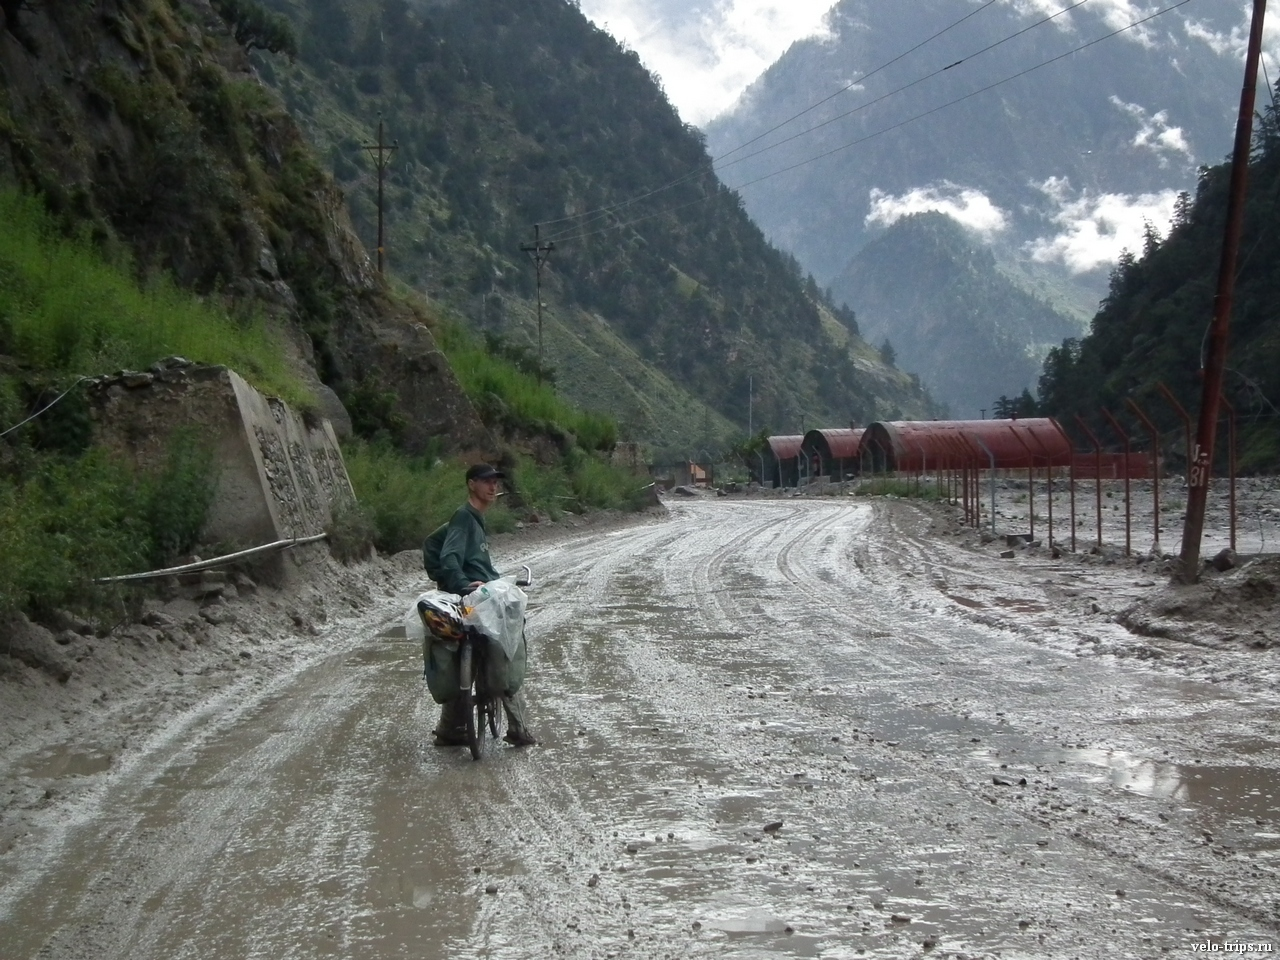 Sergey on the road Rekong Peo in Himalaya